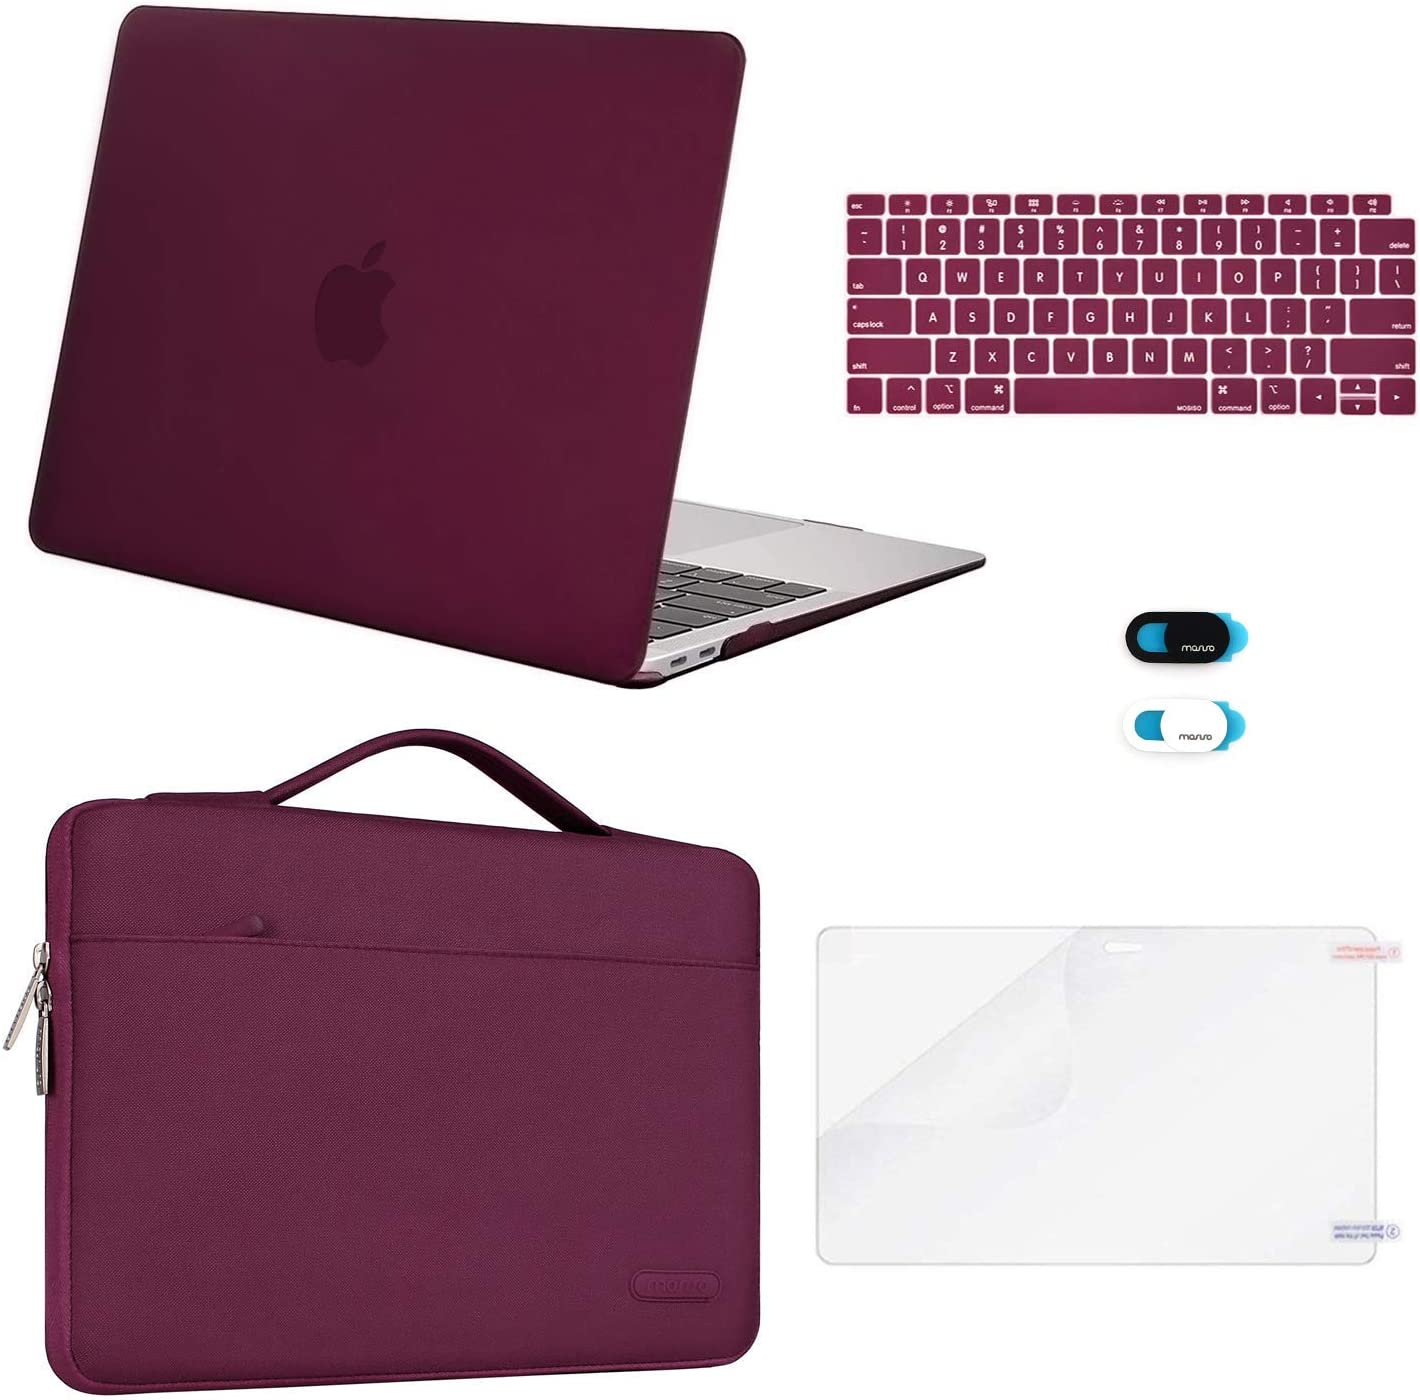 MOSISO MacBook Air 13 inch Case 2020 2019 2018 Release A2179 A1932, Plastic Hard Shell&Sleeve Bag&Keyboard Cover&Webcam Cover&Screen Protector Compatible with MacBook Air 13 inch Retina, Marsala Red